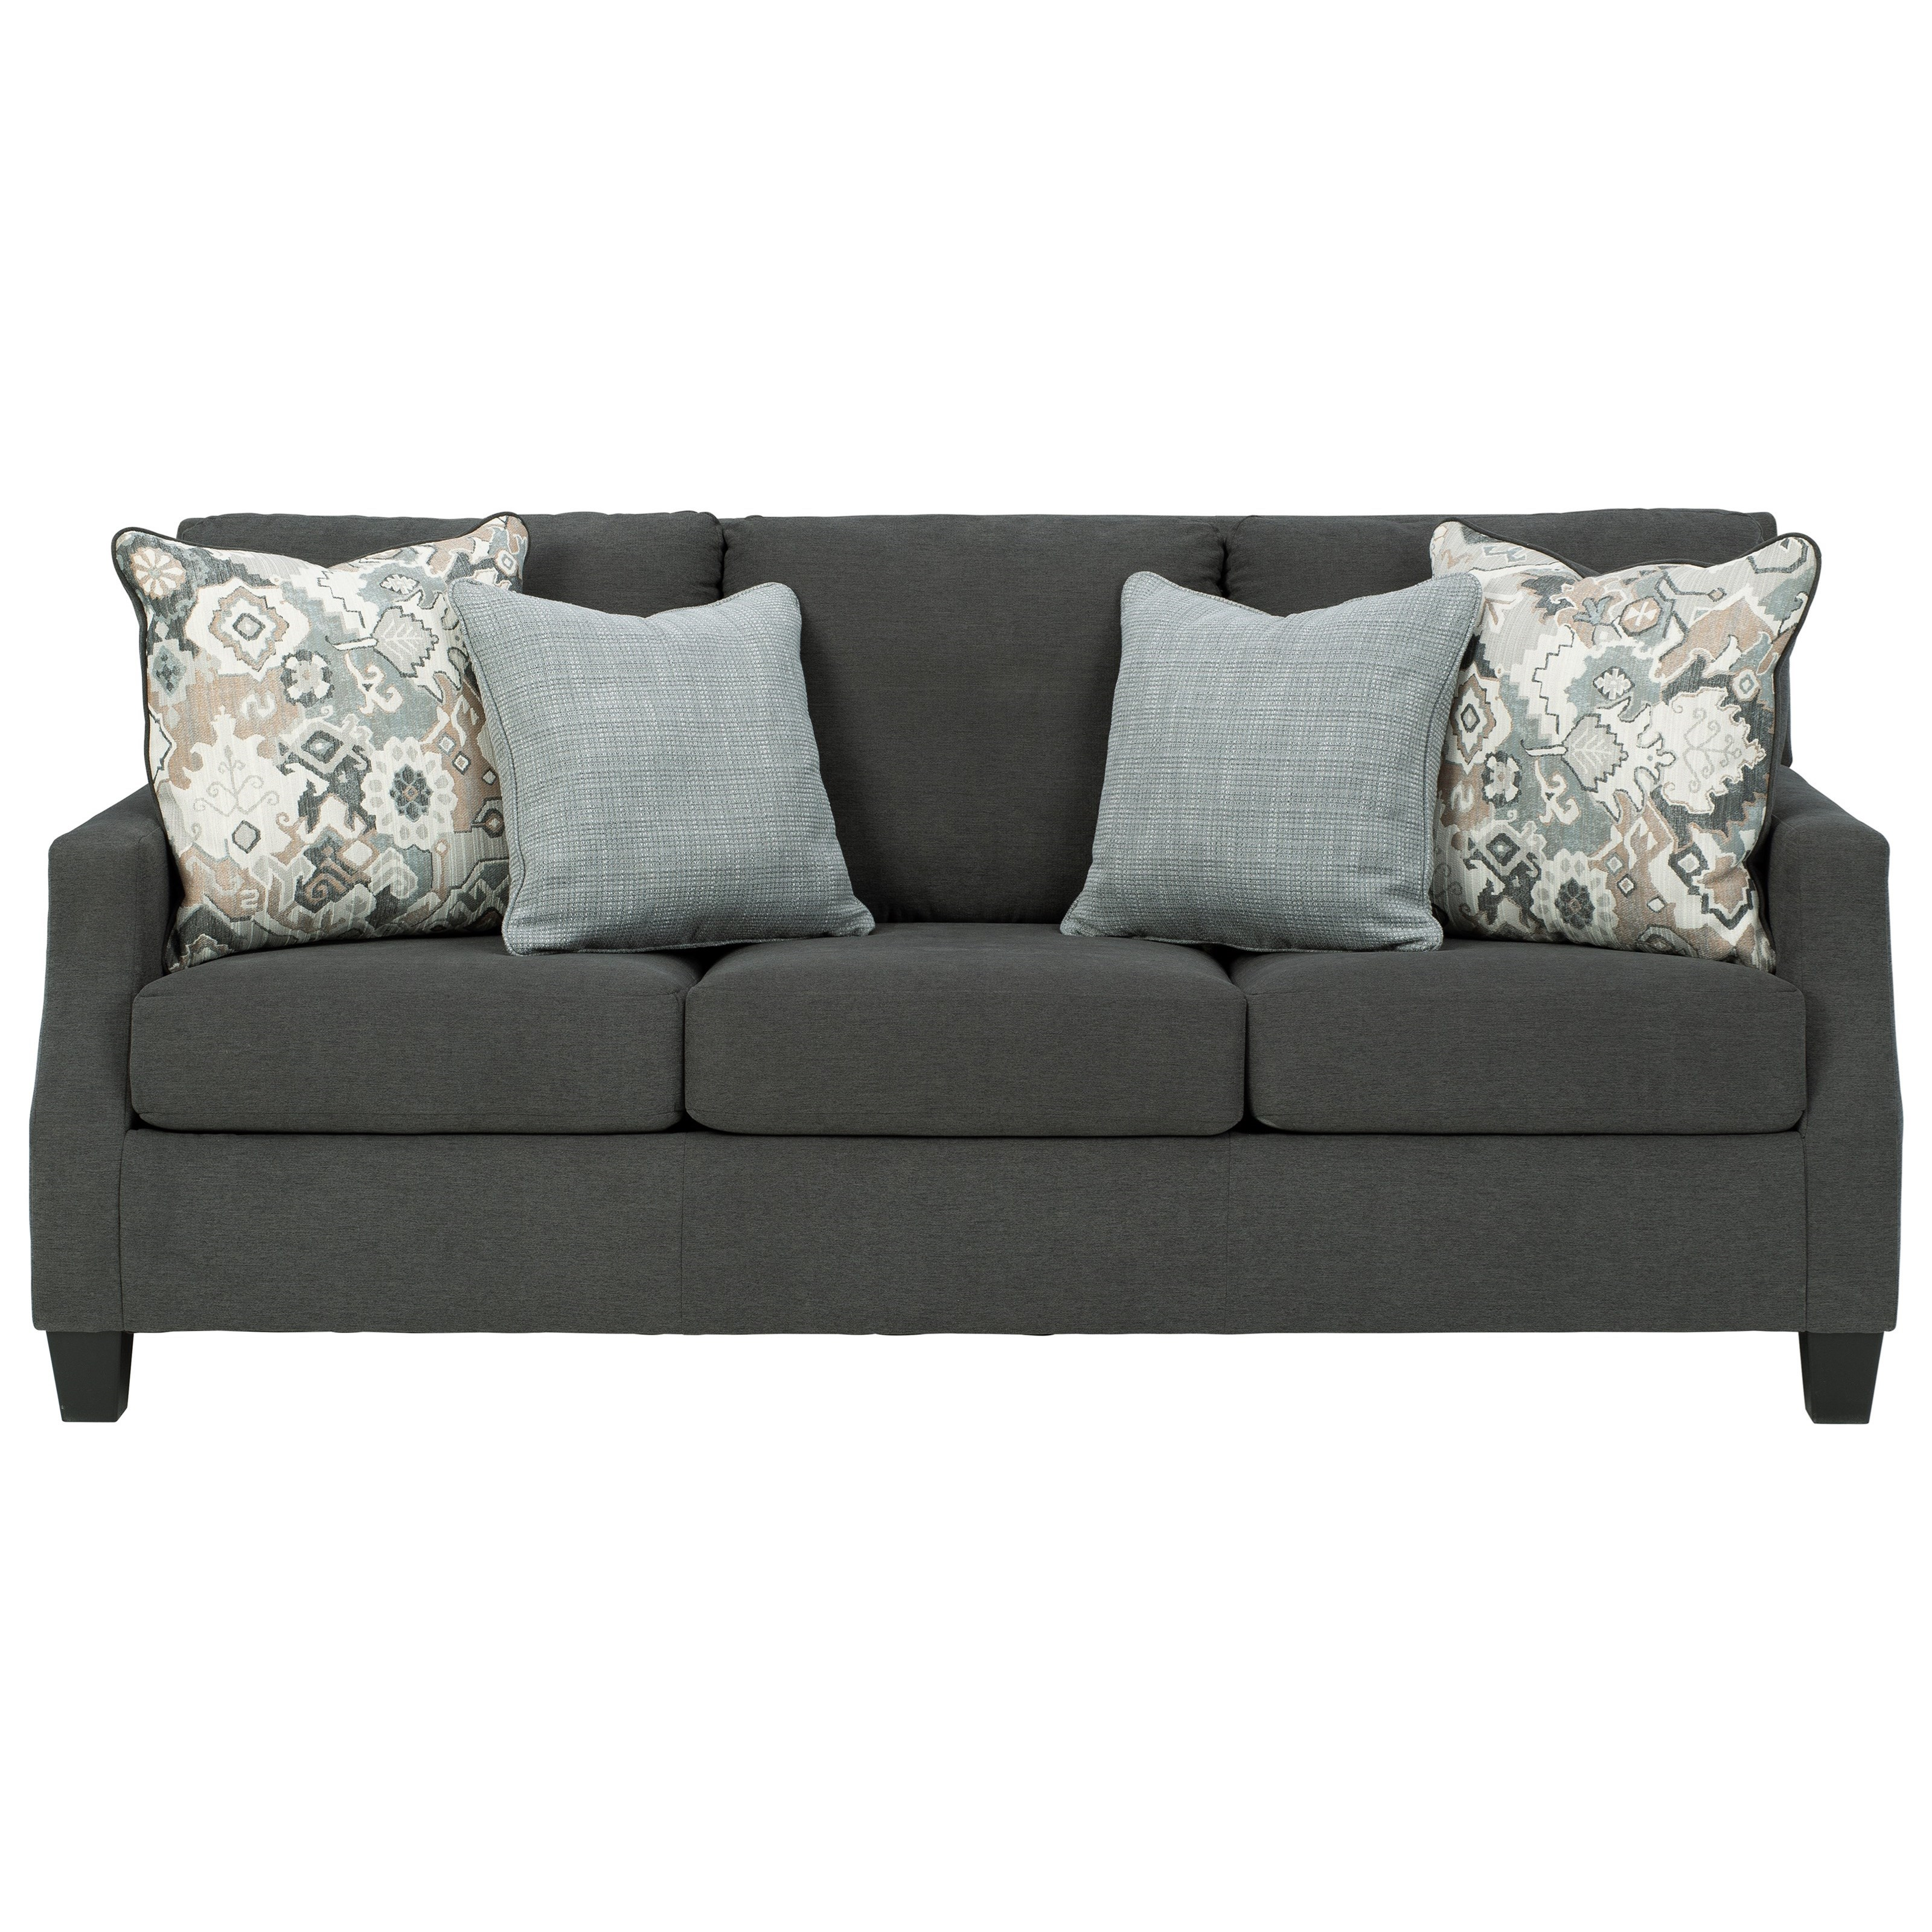 Bayonne Sofa by Michael Alan Select at Michael Alan Furniture & Design